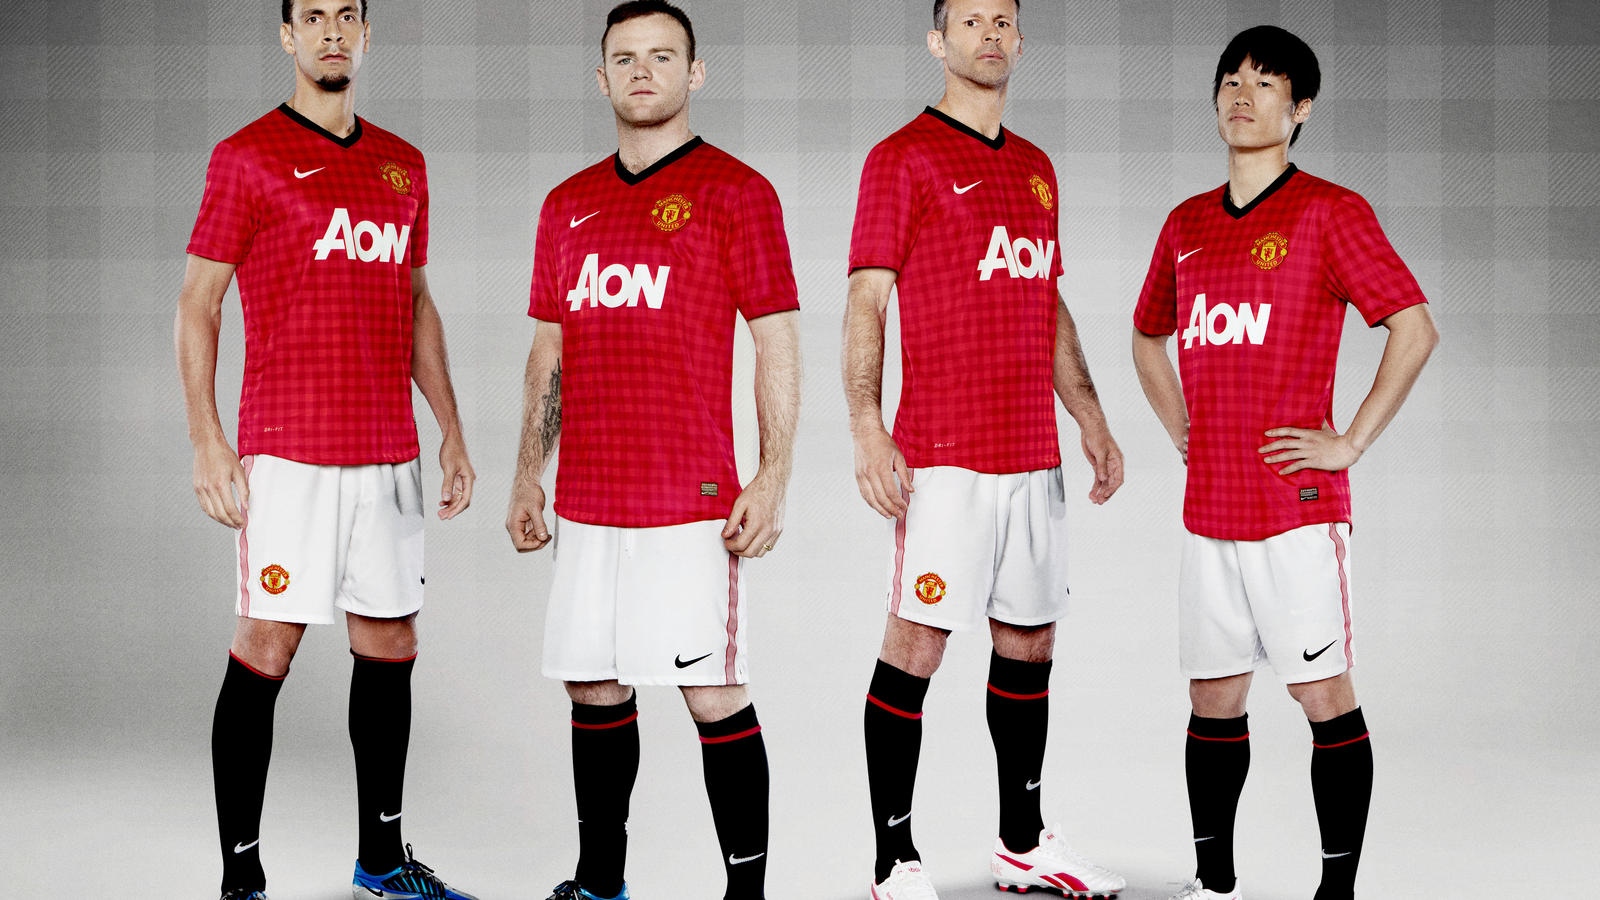 huge selection of 1b4e1 1b016 Nike Football Unveils Manchester United Home Kit for the ...